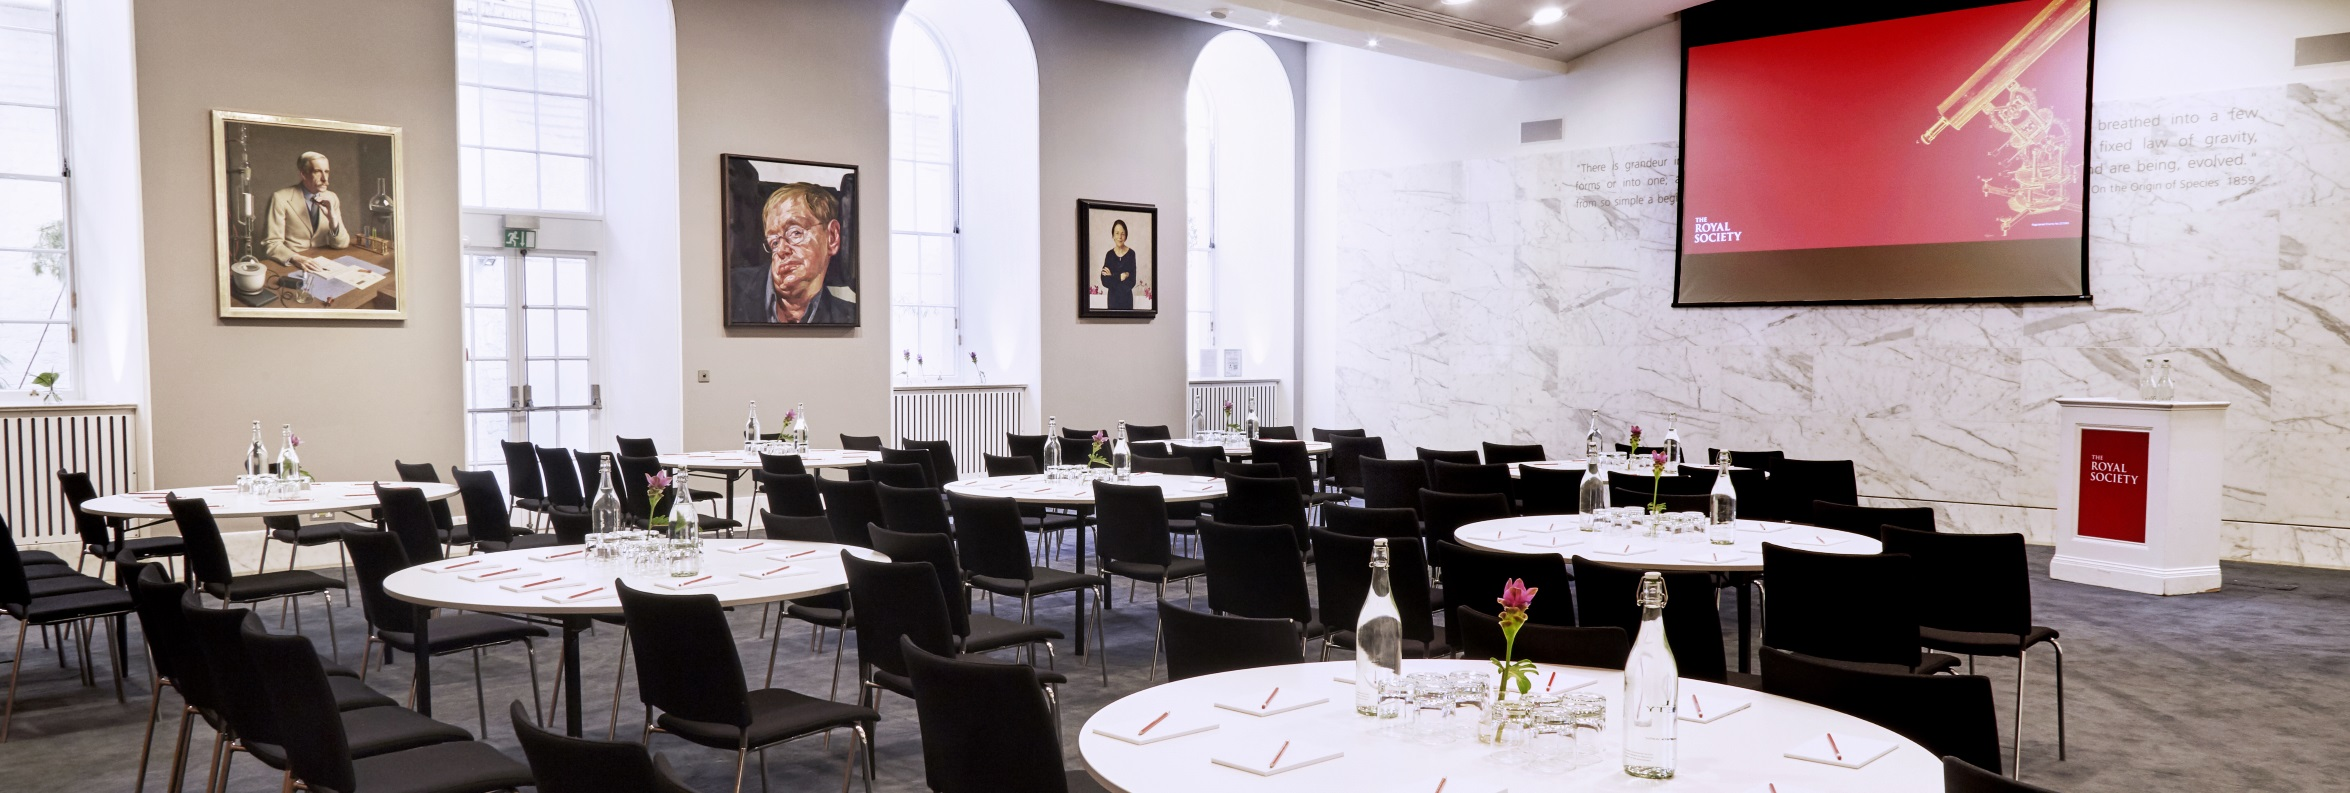 Cabaret layout in the Dining Room at the Royal Society